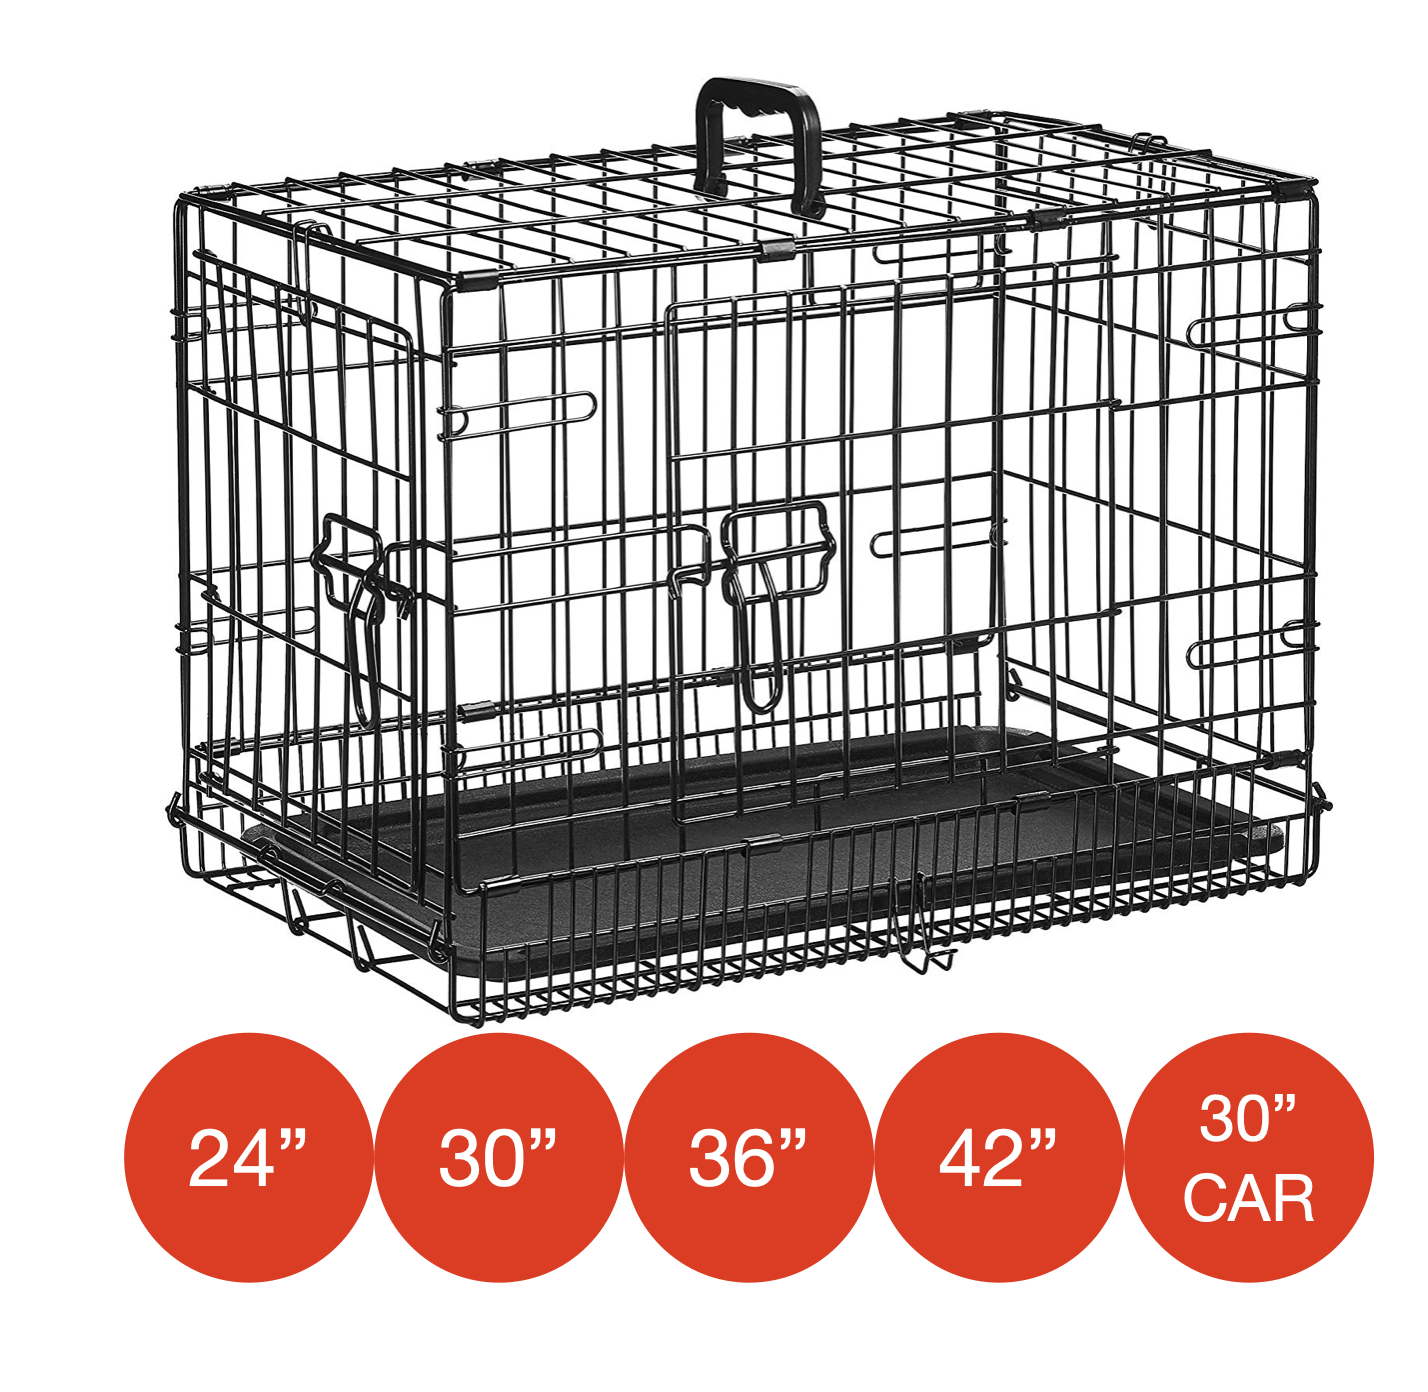 Folding Metal Dog Cage By Mr Barker Puppy Training Crates 5 sizes 24-42 Inch 2